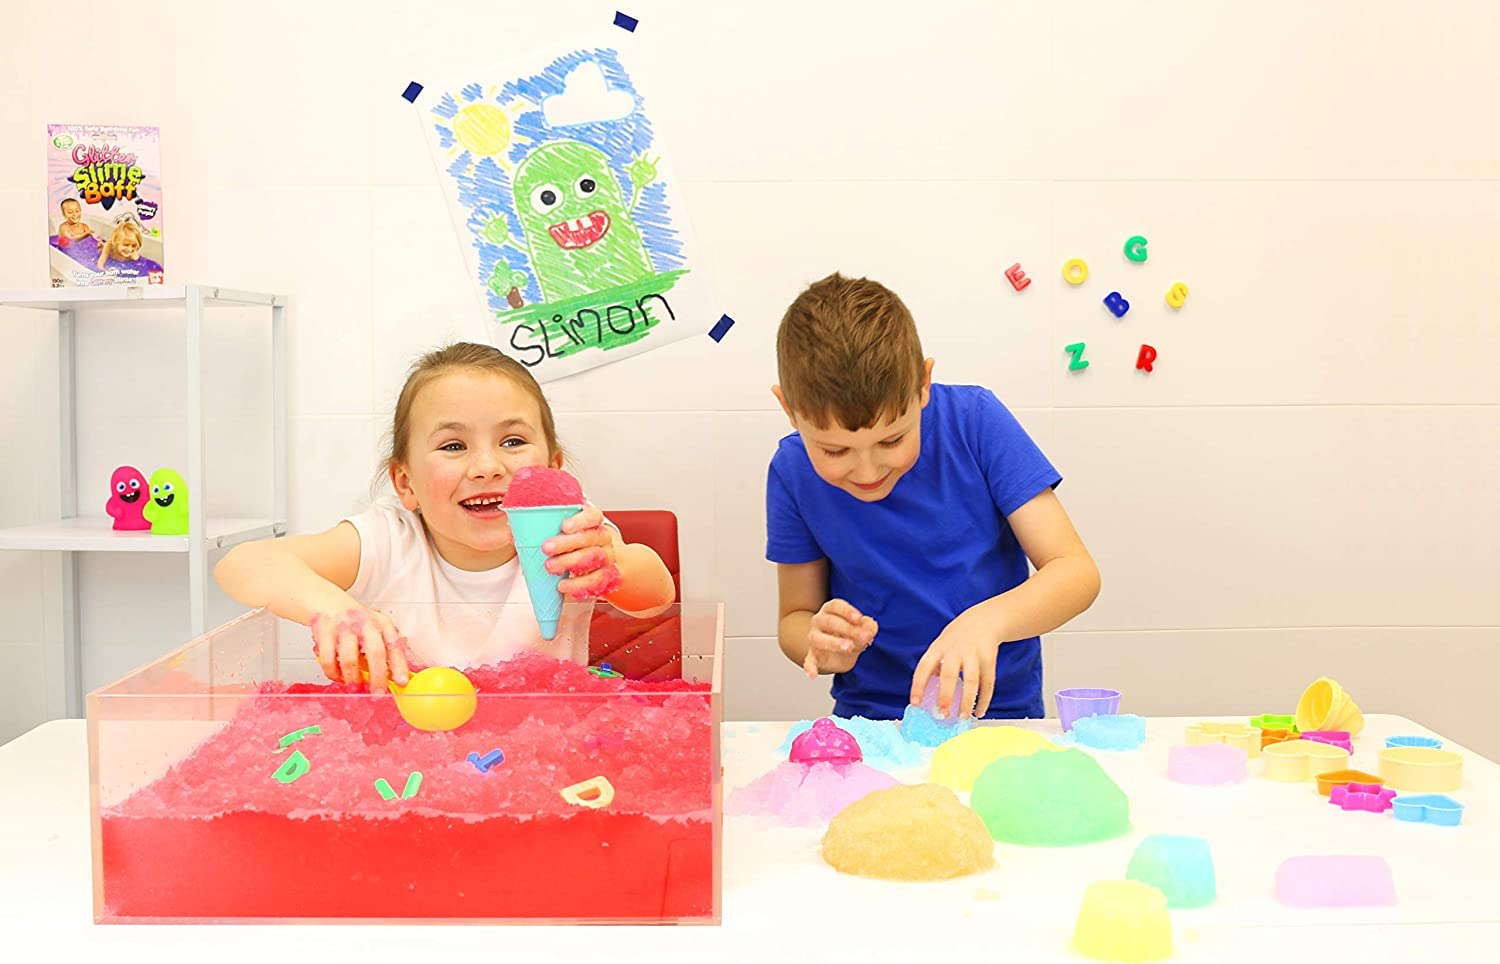 Certified Biodegradable Toy Turn Water into Colourful goo Childrens Sensory /& Play Toy Zimpli Kids 5474 Gelli Play Foil Bags Mixed x24